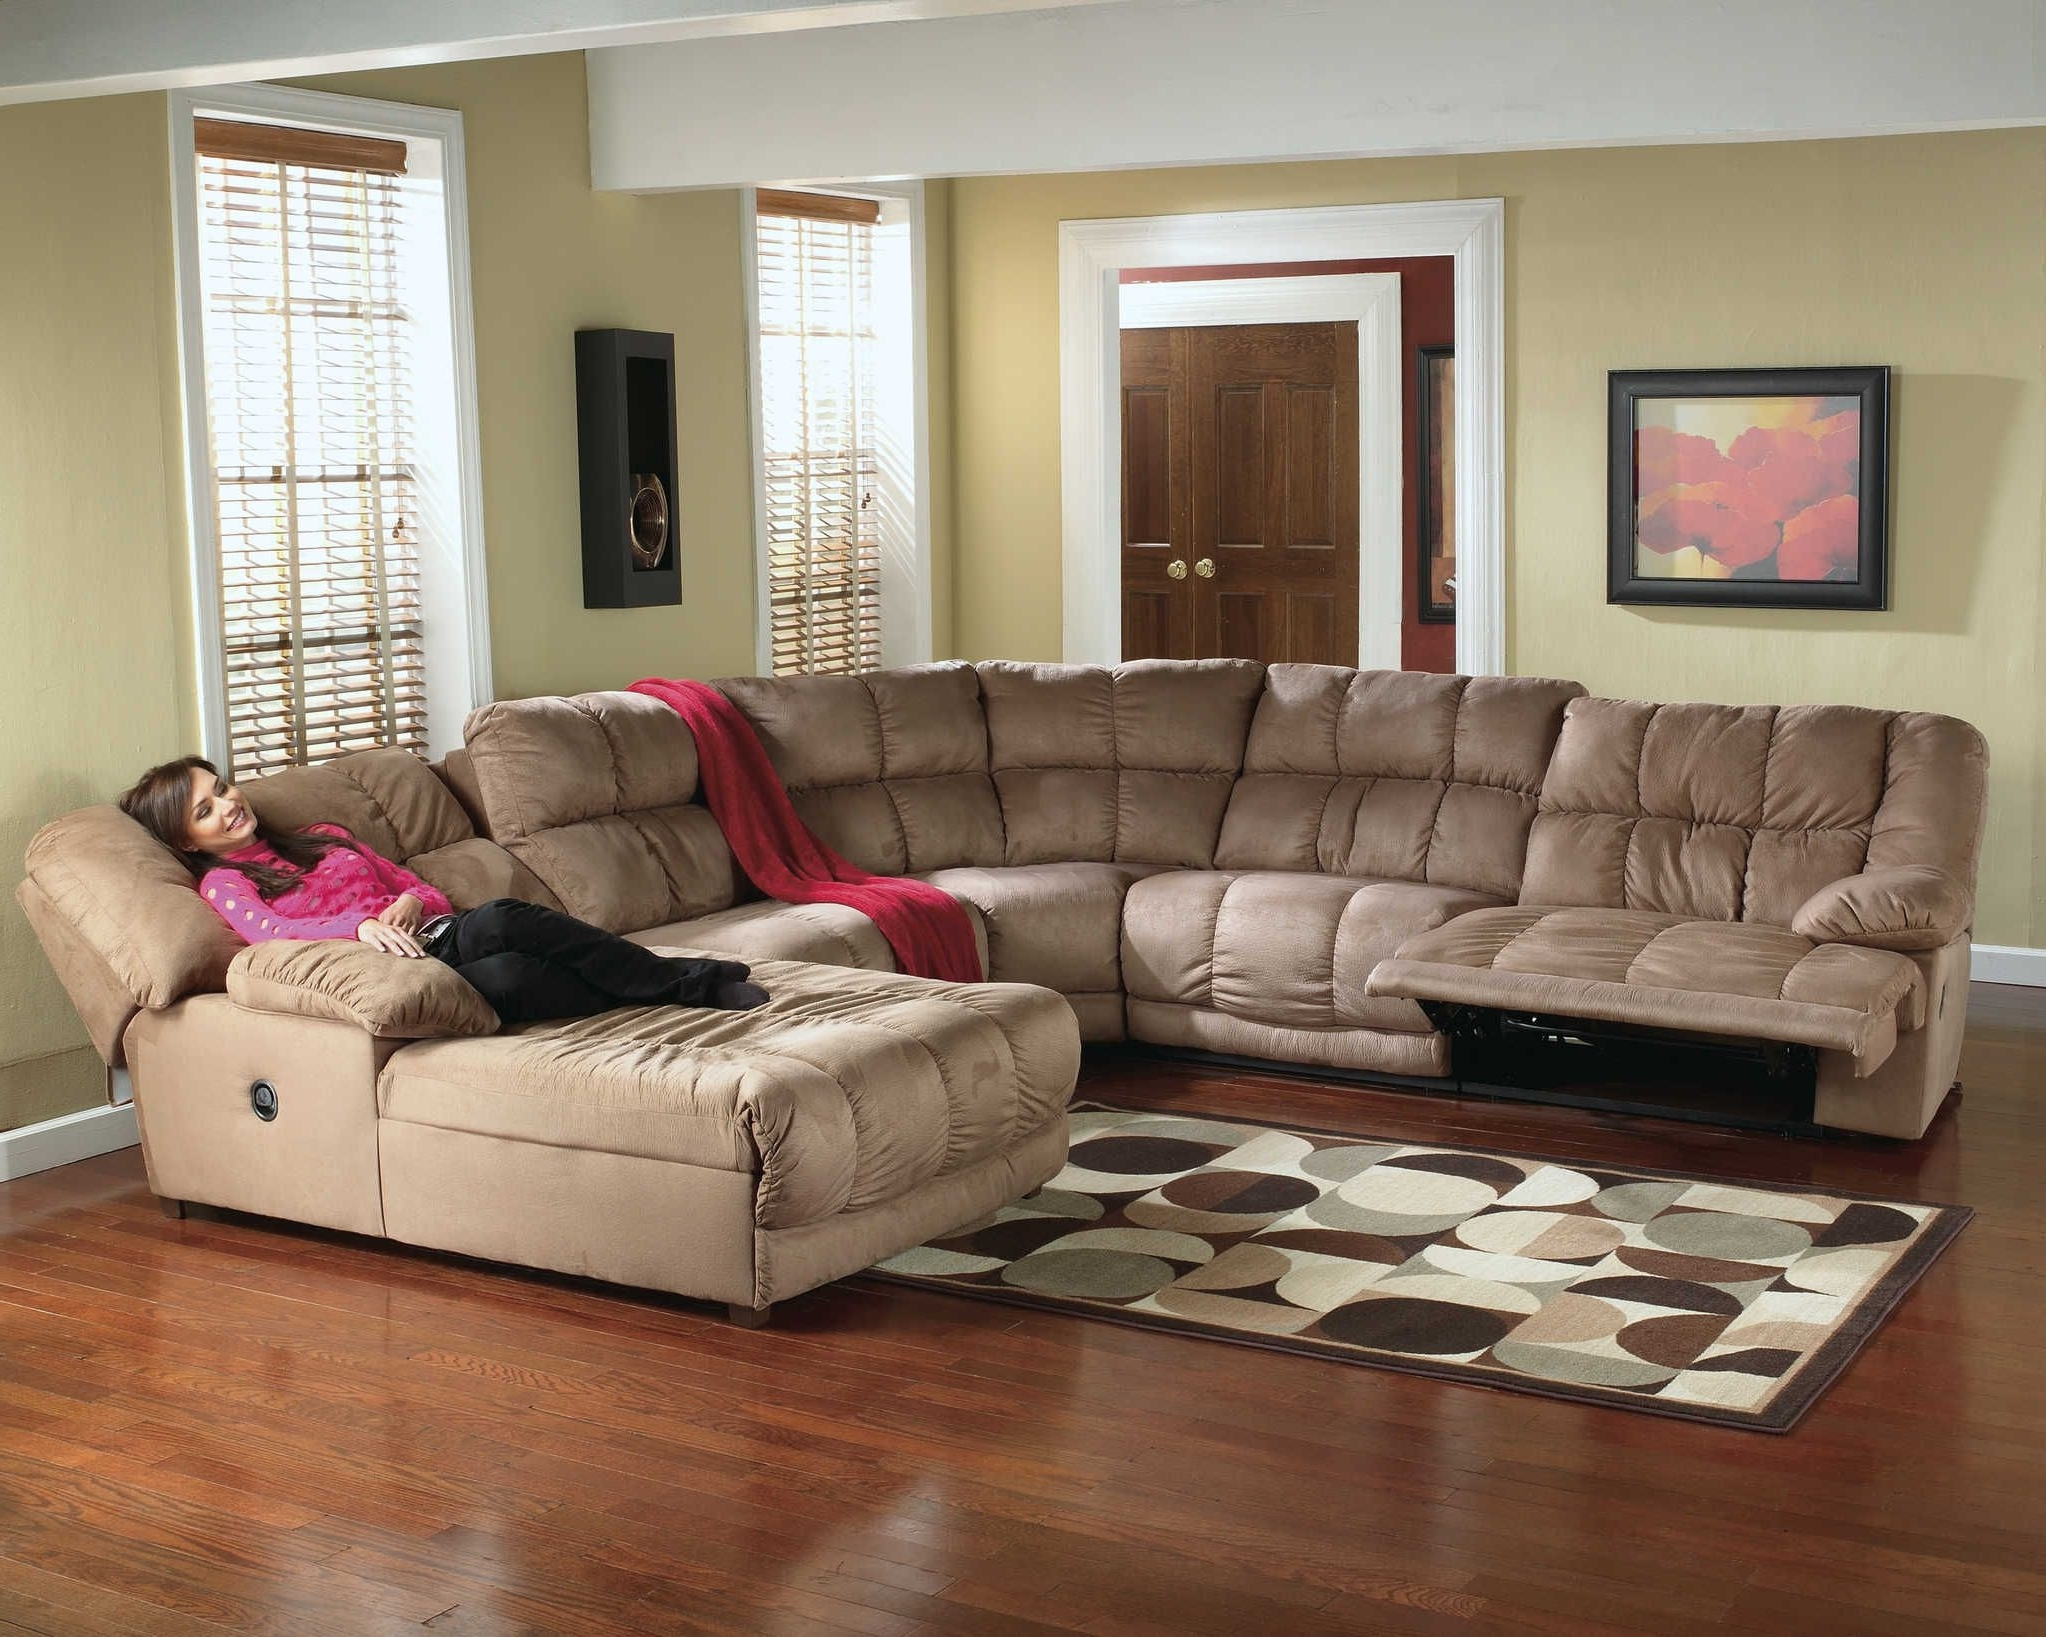 Most Recently Released Sectional Sofas With Recliner And Chaise Lounge Inside Microfiber Recliner Sectional (View 7 of 15)